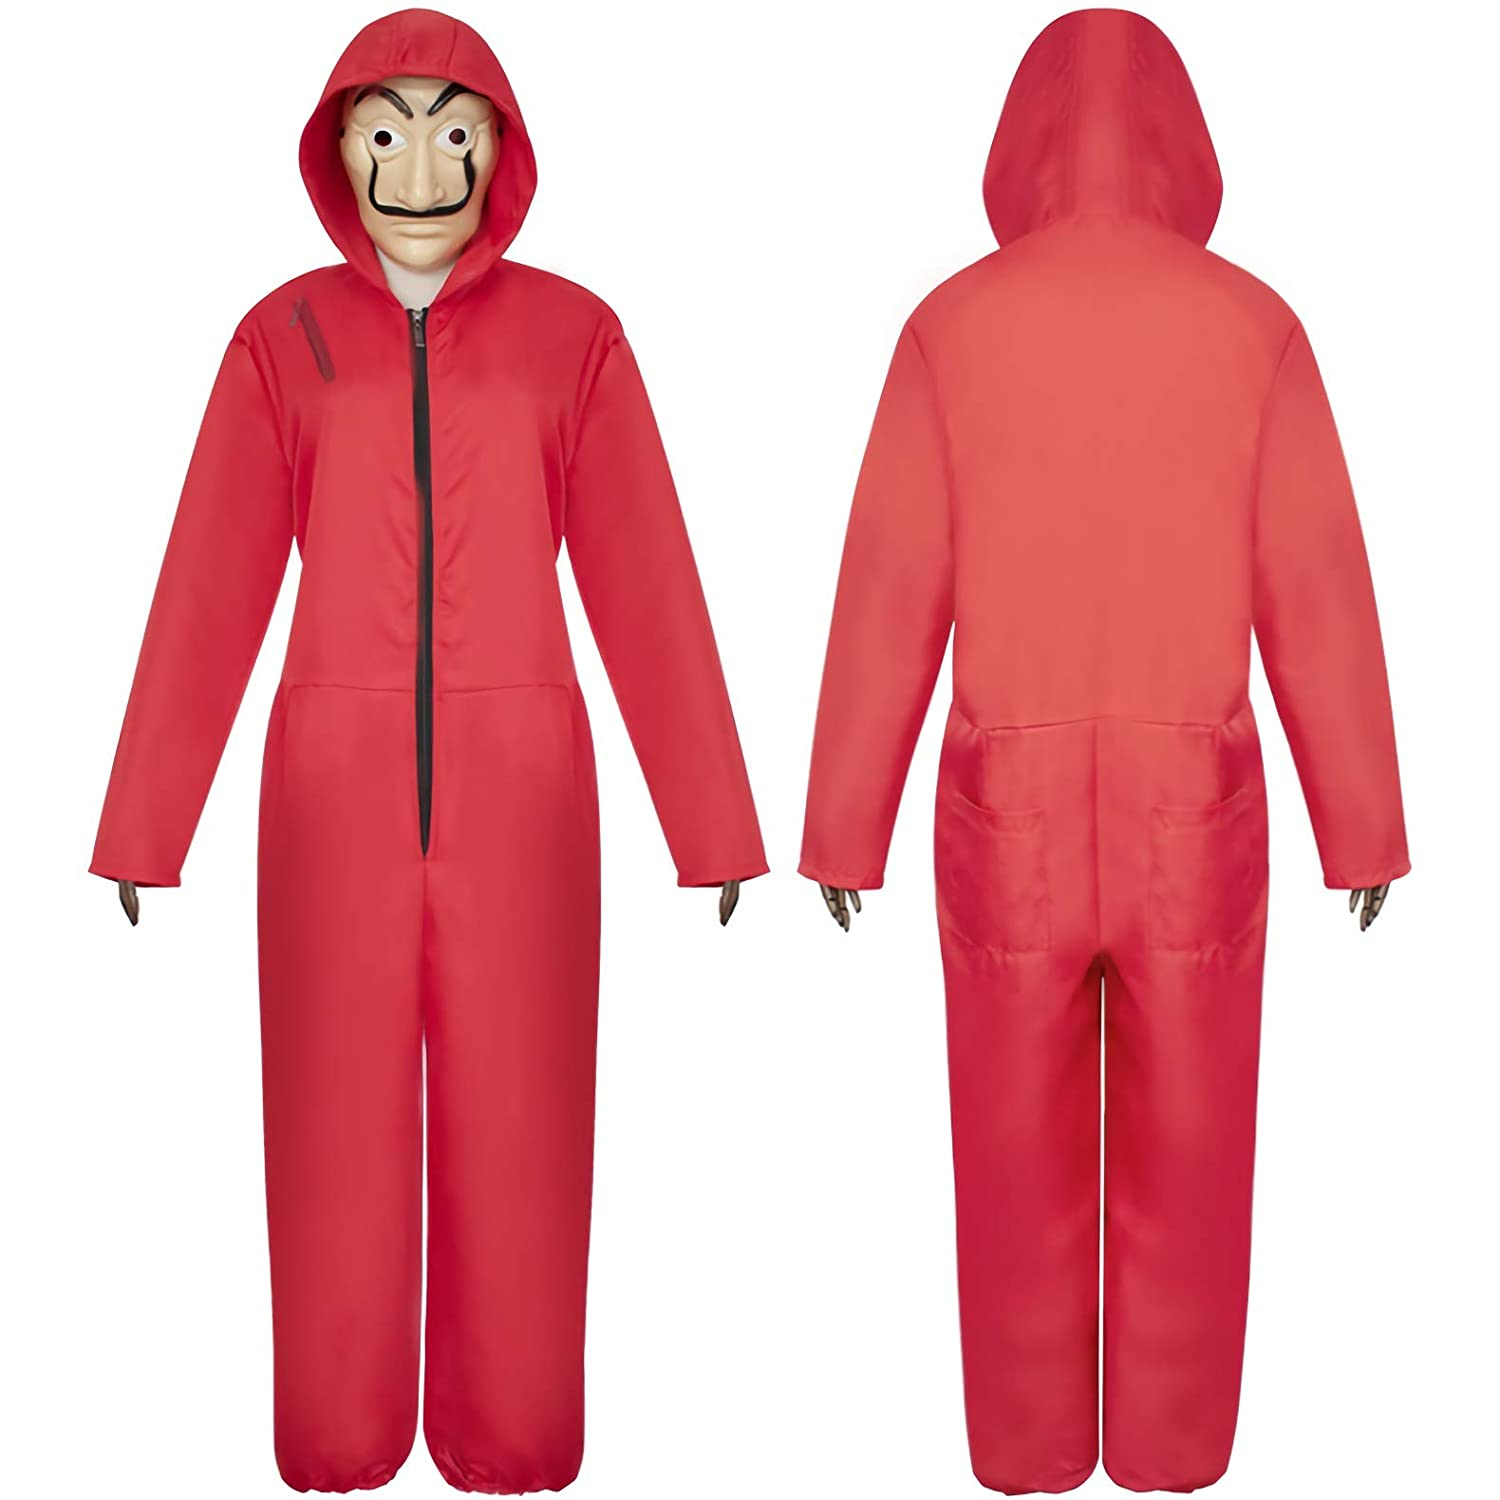 The Paper House La Casa De Papel Costume Hoodie Jumpsuits Salvador Dali Red Cosplay Clothing